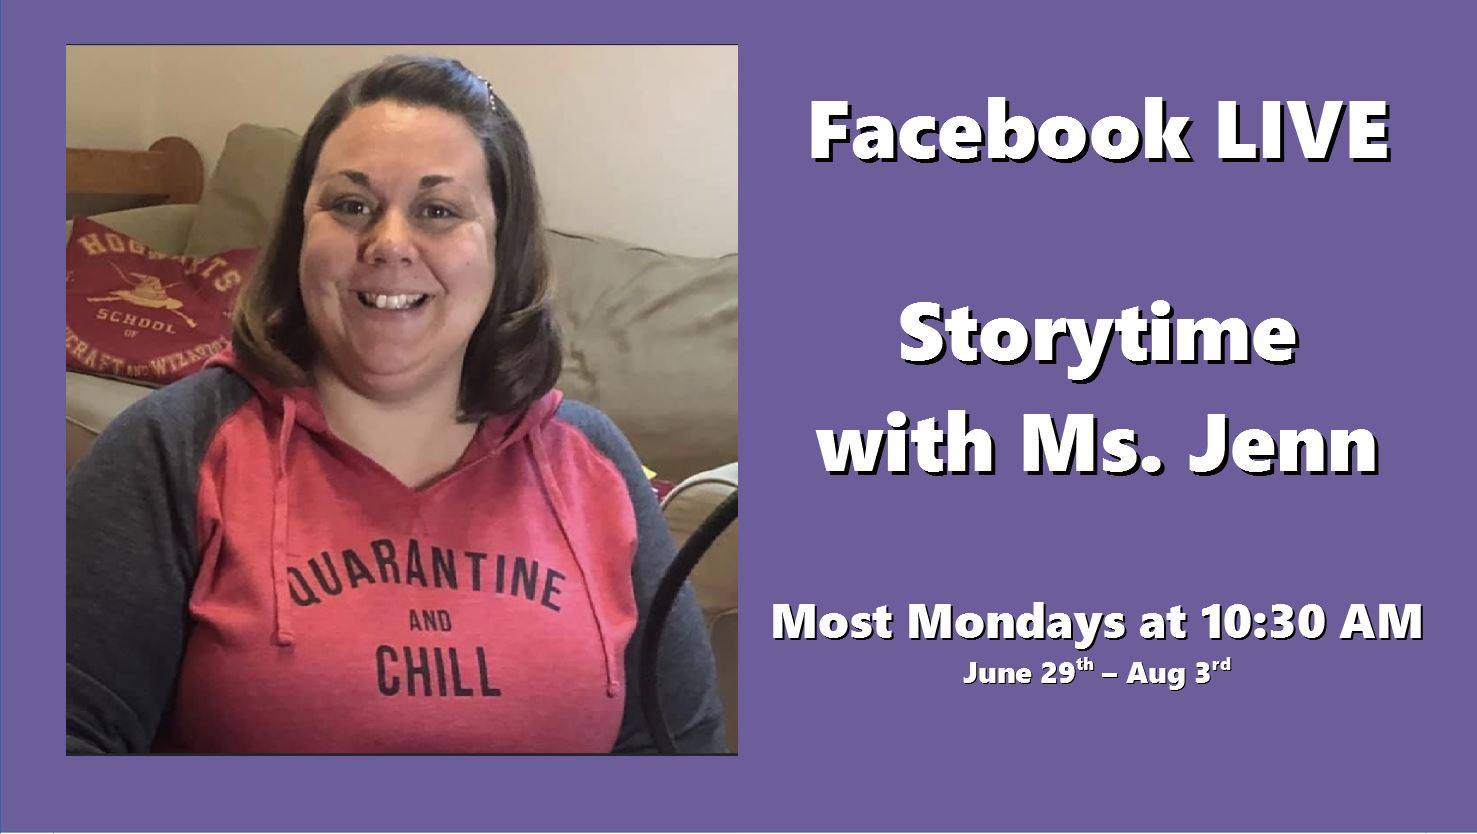 Facebook LIVE Storytime with Ms Jenn